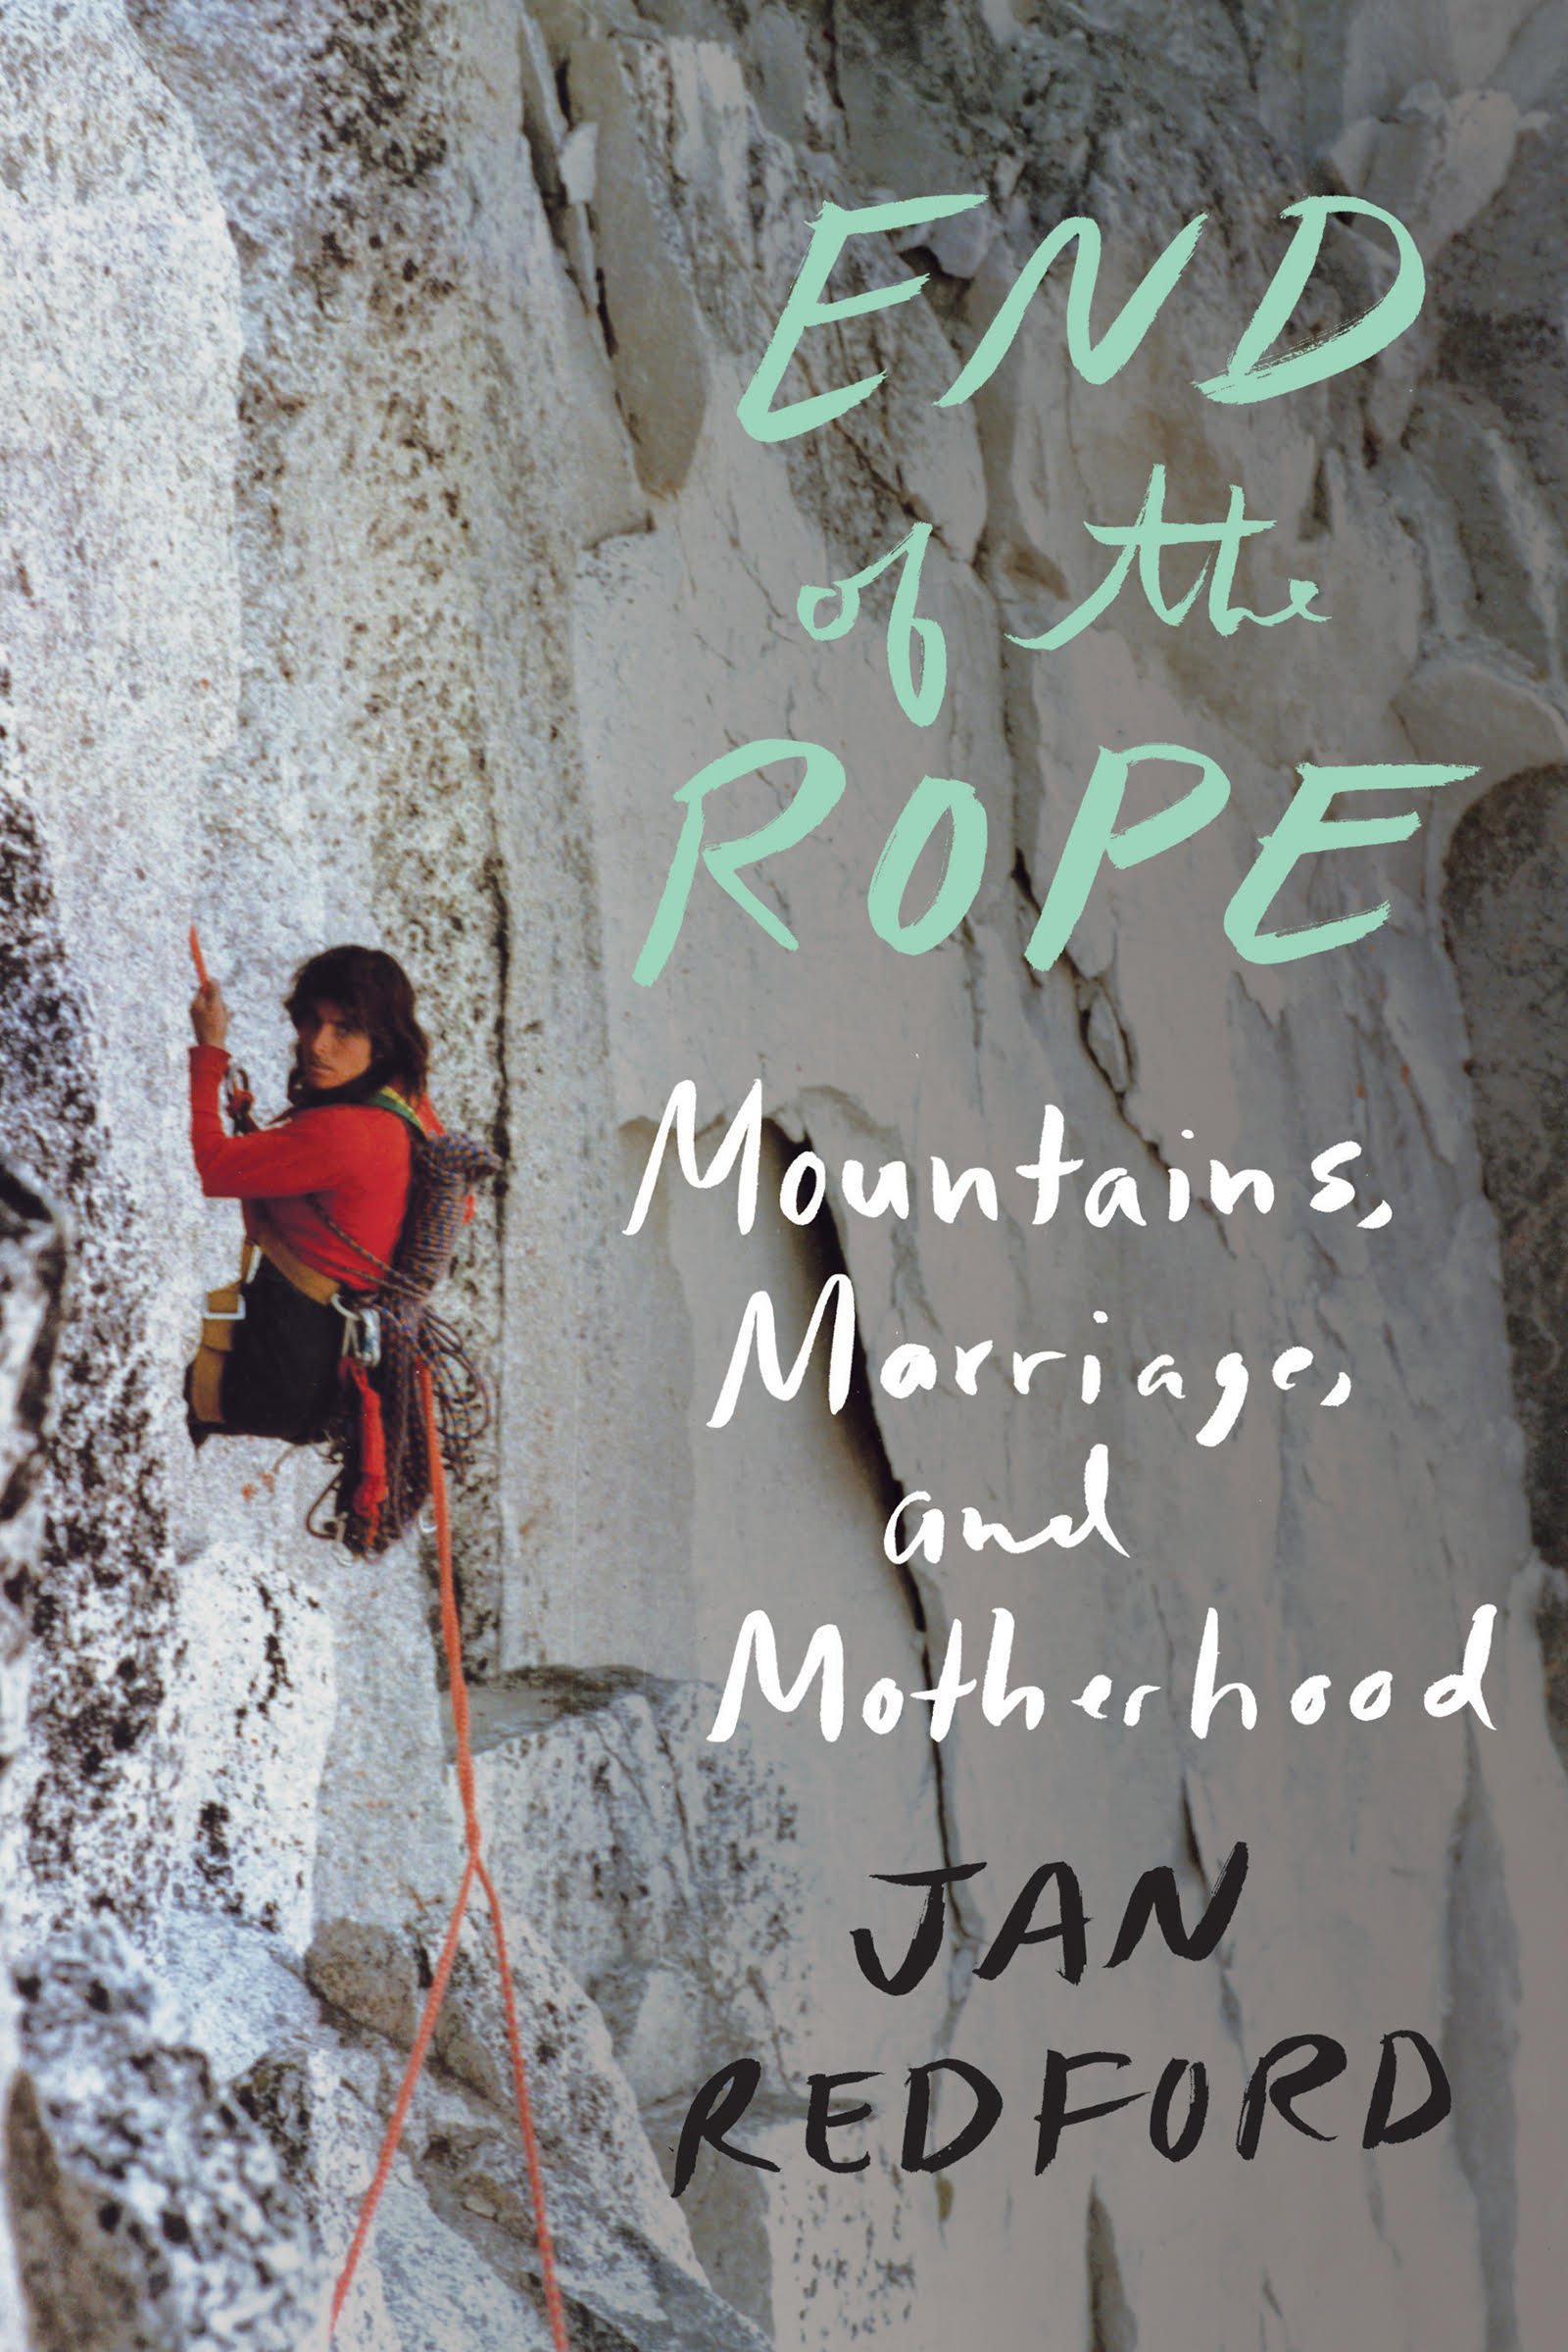 End of the Rope: Mountains, Marriage, and Motherhood by Jan Redford. Counterpoint Press, 2018. Hardcover, 344 pages, $26.00.